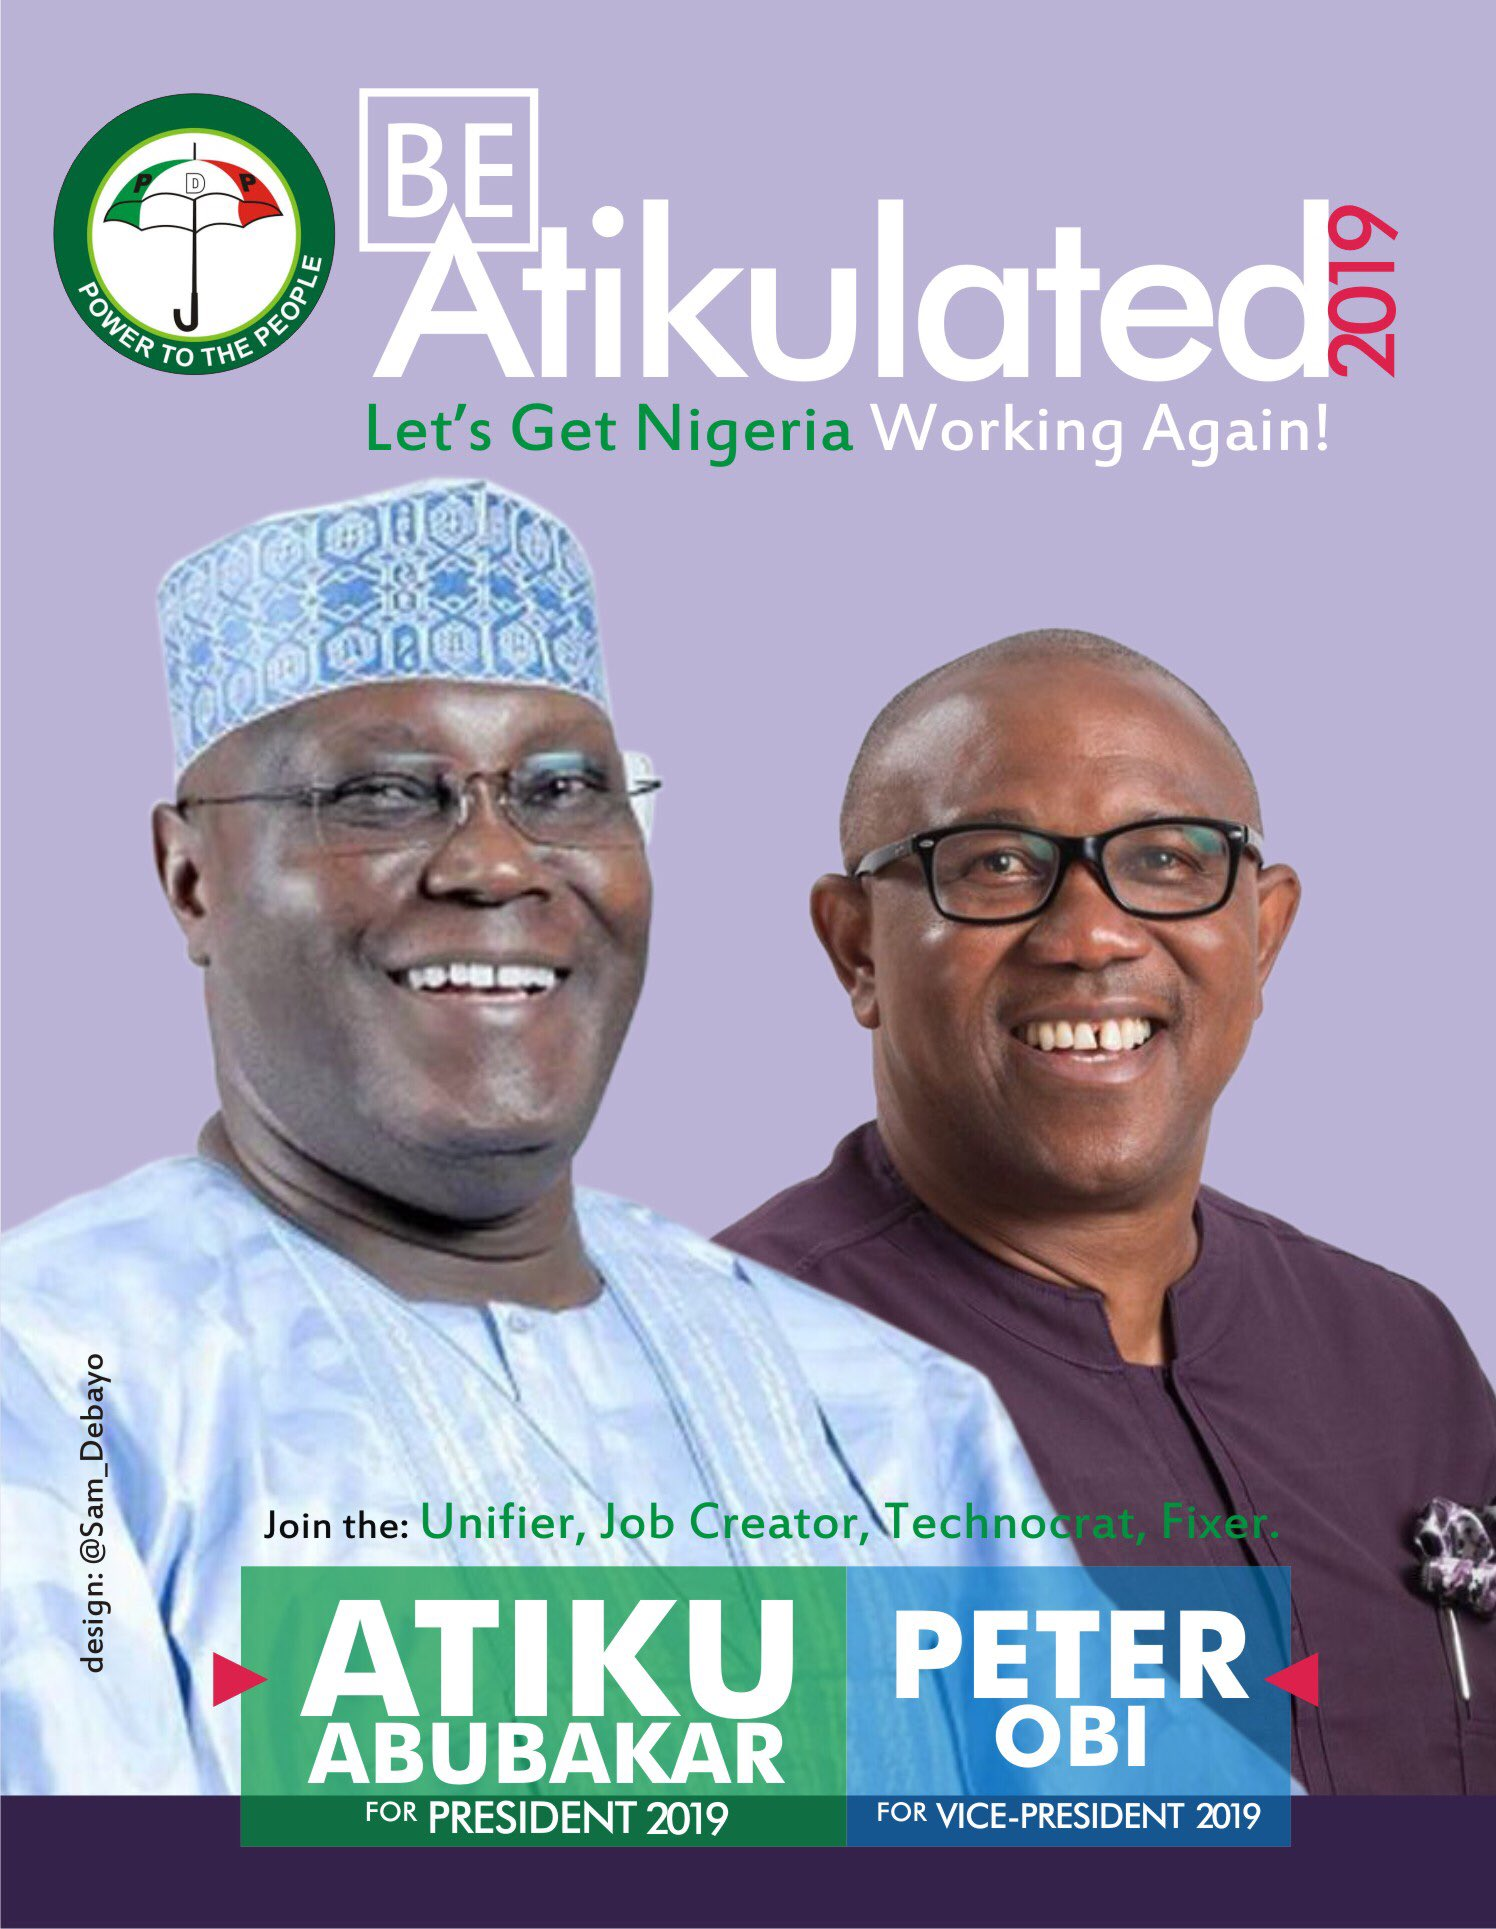 Atiku Abubakar (L) and Peter Obi